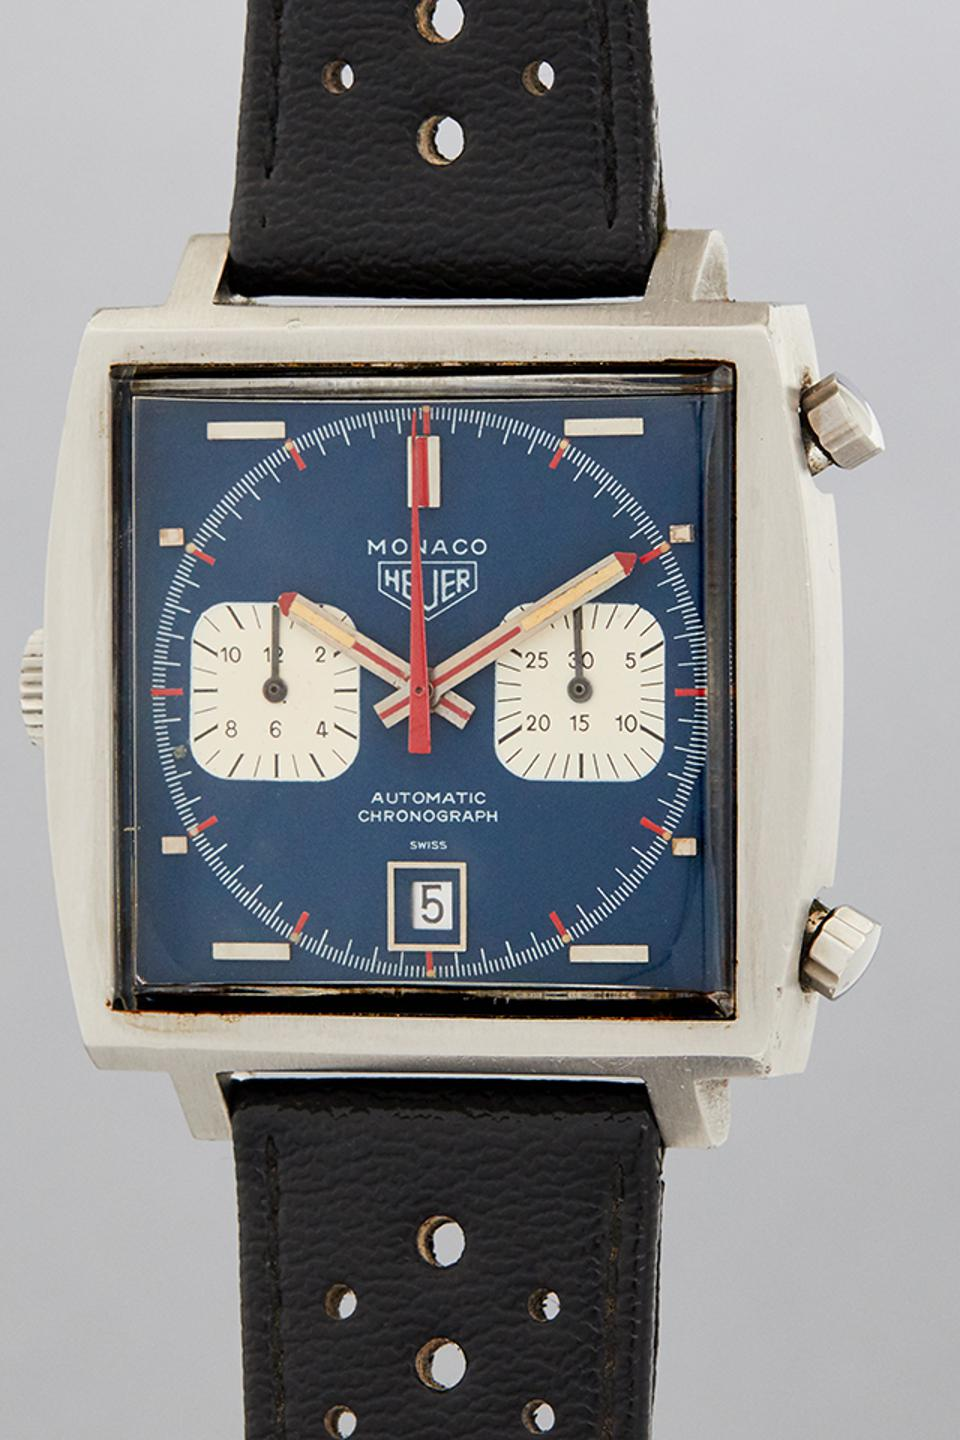 Phillips sold this Heuer Monaco ref. 1133, once owned by Steve McQueen, for $2,208,000.